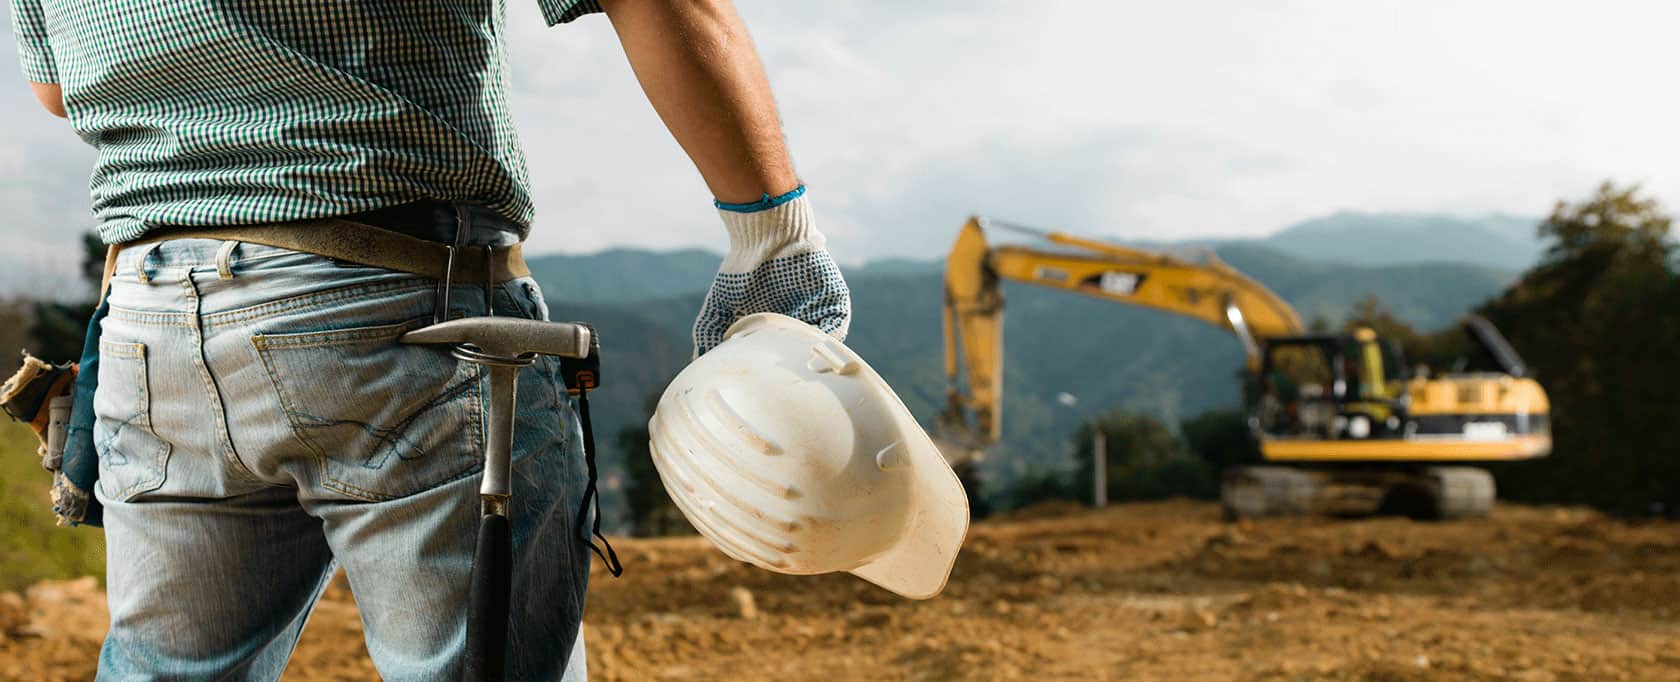 Hiring a contractor tower hill insurance for Hiring a contractor